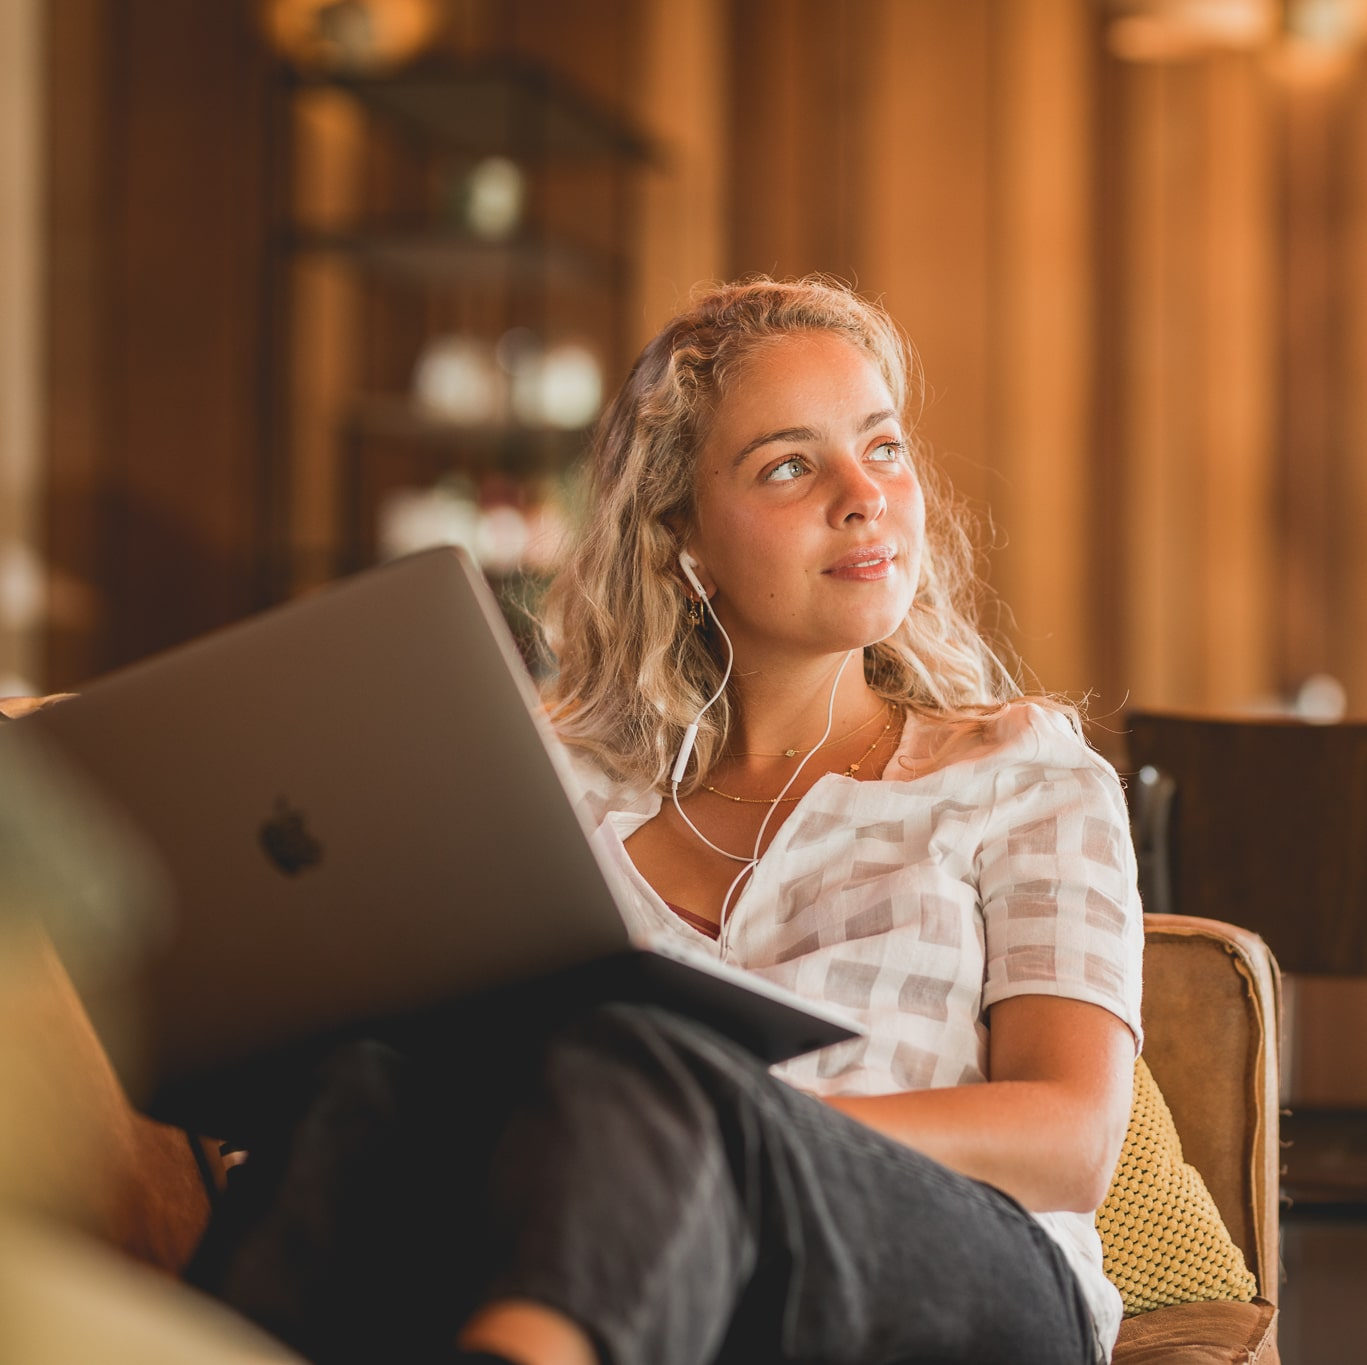 Smiling woman looking off with laptop on her lap